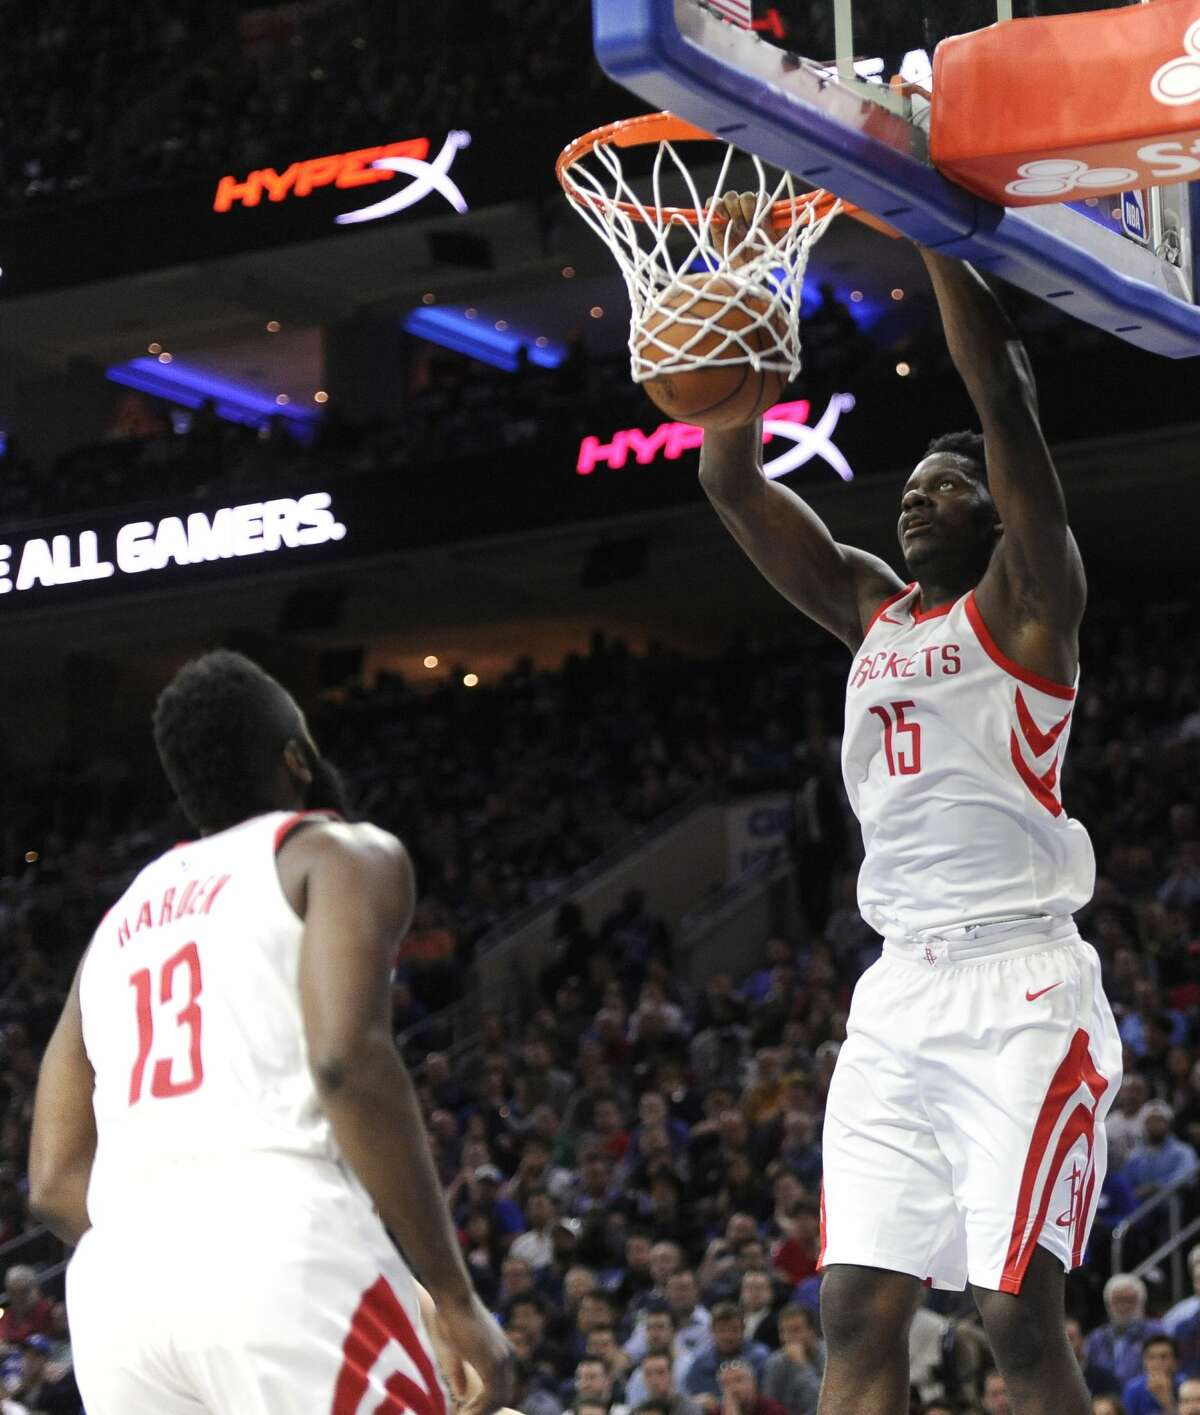 Houston Rockets' Clint Capela (15) dunks the ball in the first half of an NBA basketball game against the Philadelphia 76ers, Wednesday, Oct. 25, 2017, in Philadelphia. (AP Photo/Michael Perez)